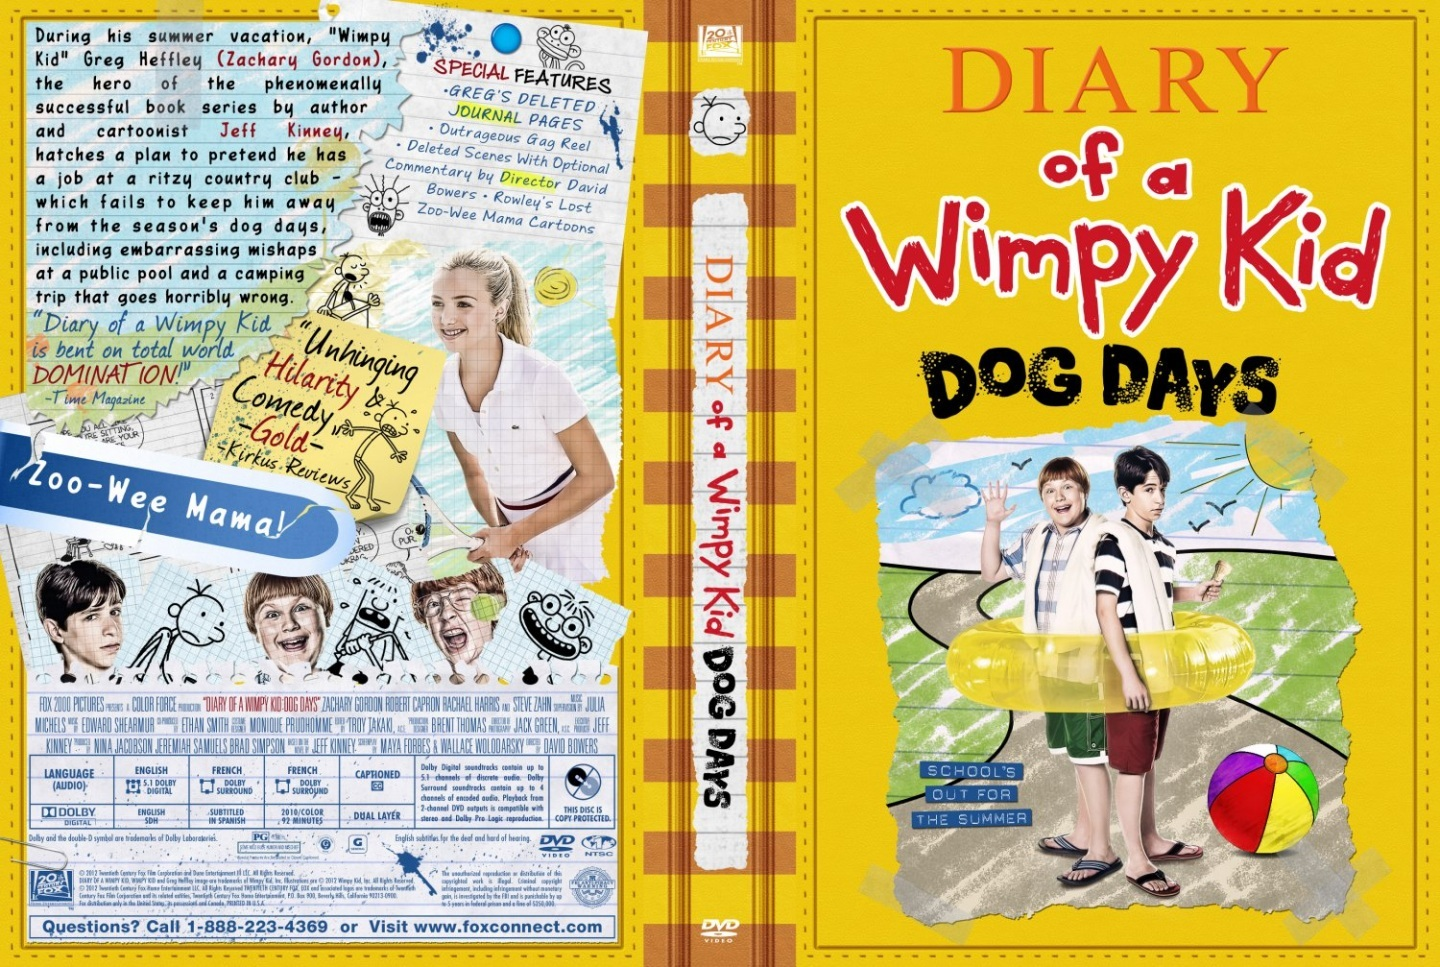 Diary Of Wimpy Kid Dog Days Cover Diary Of Wimpy Kid Dog Days 1440x967